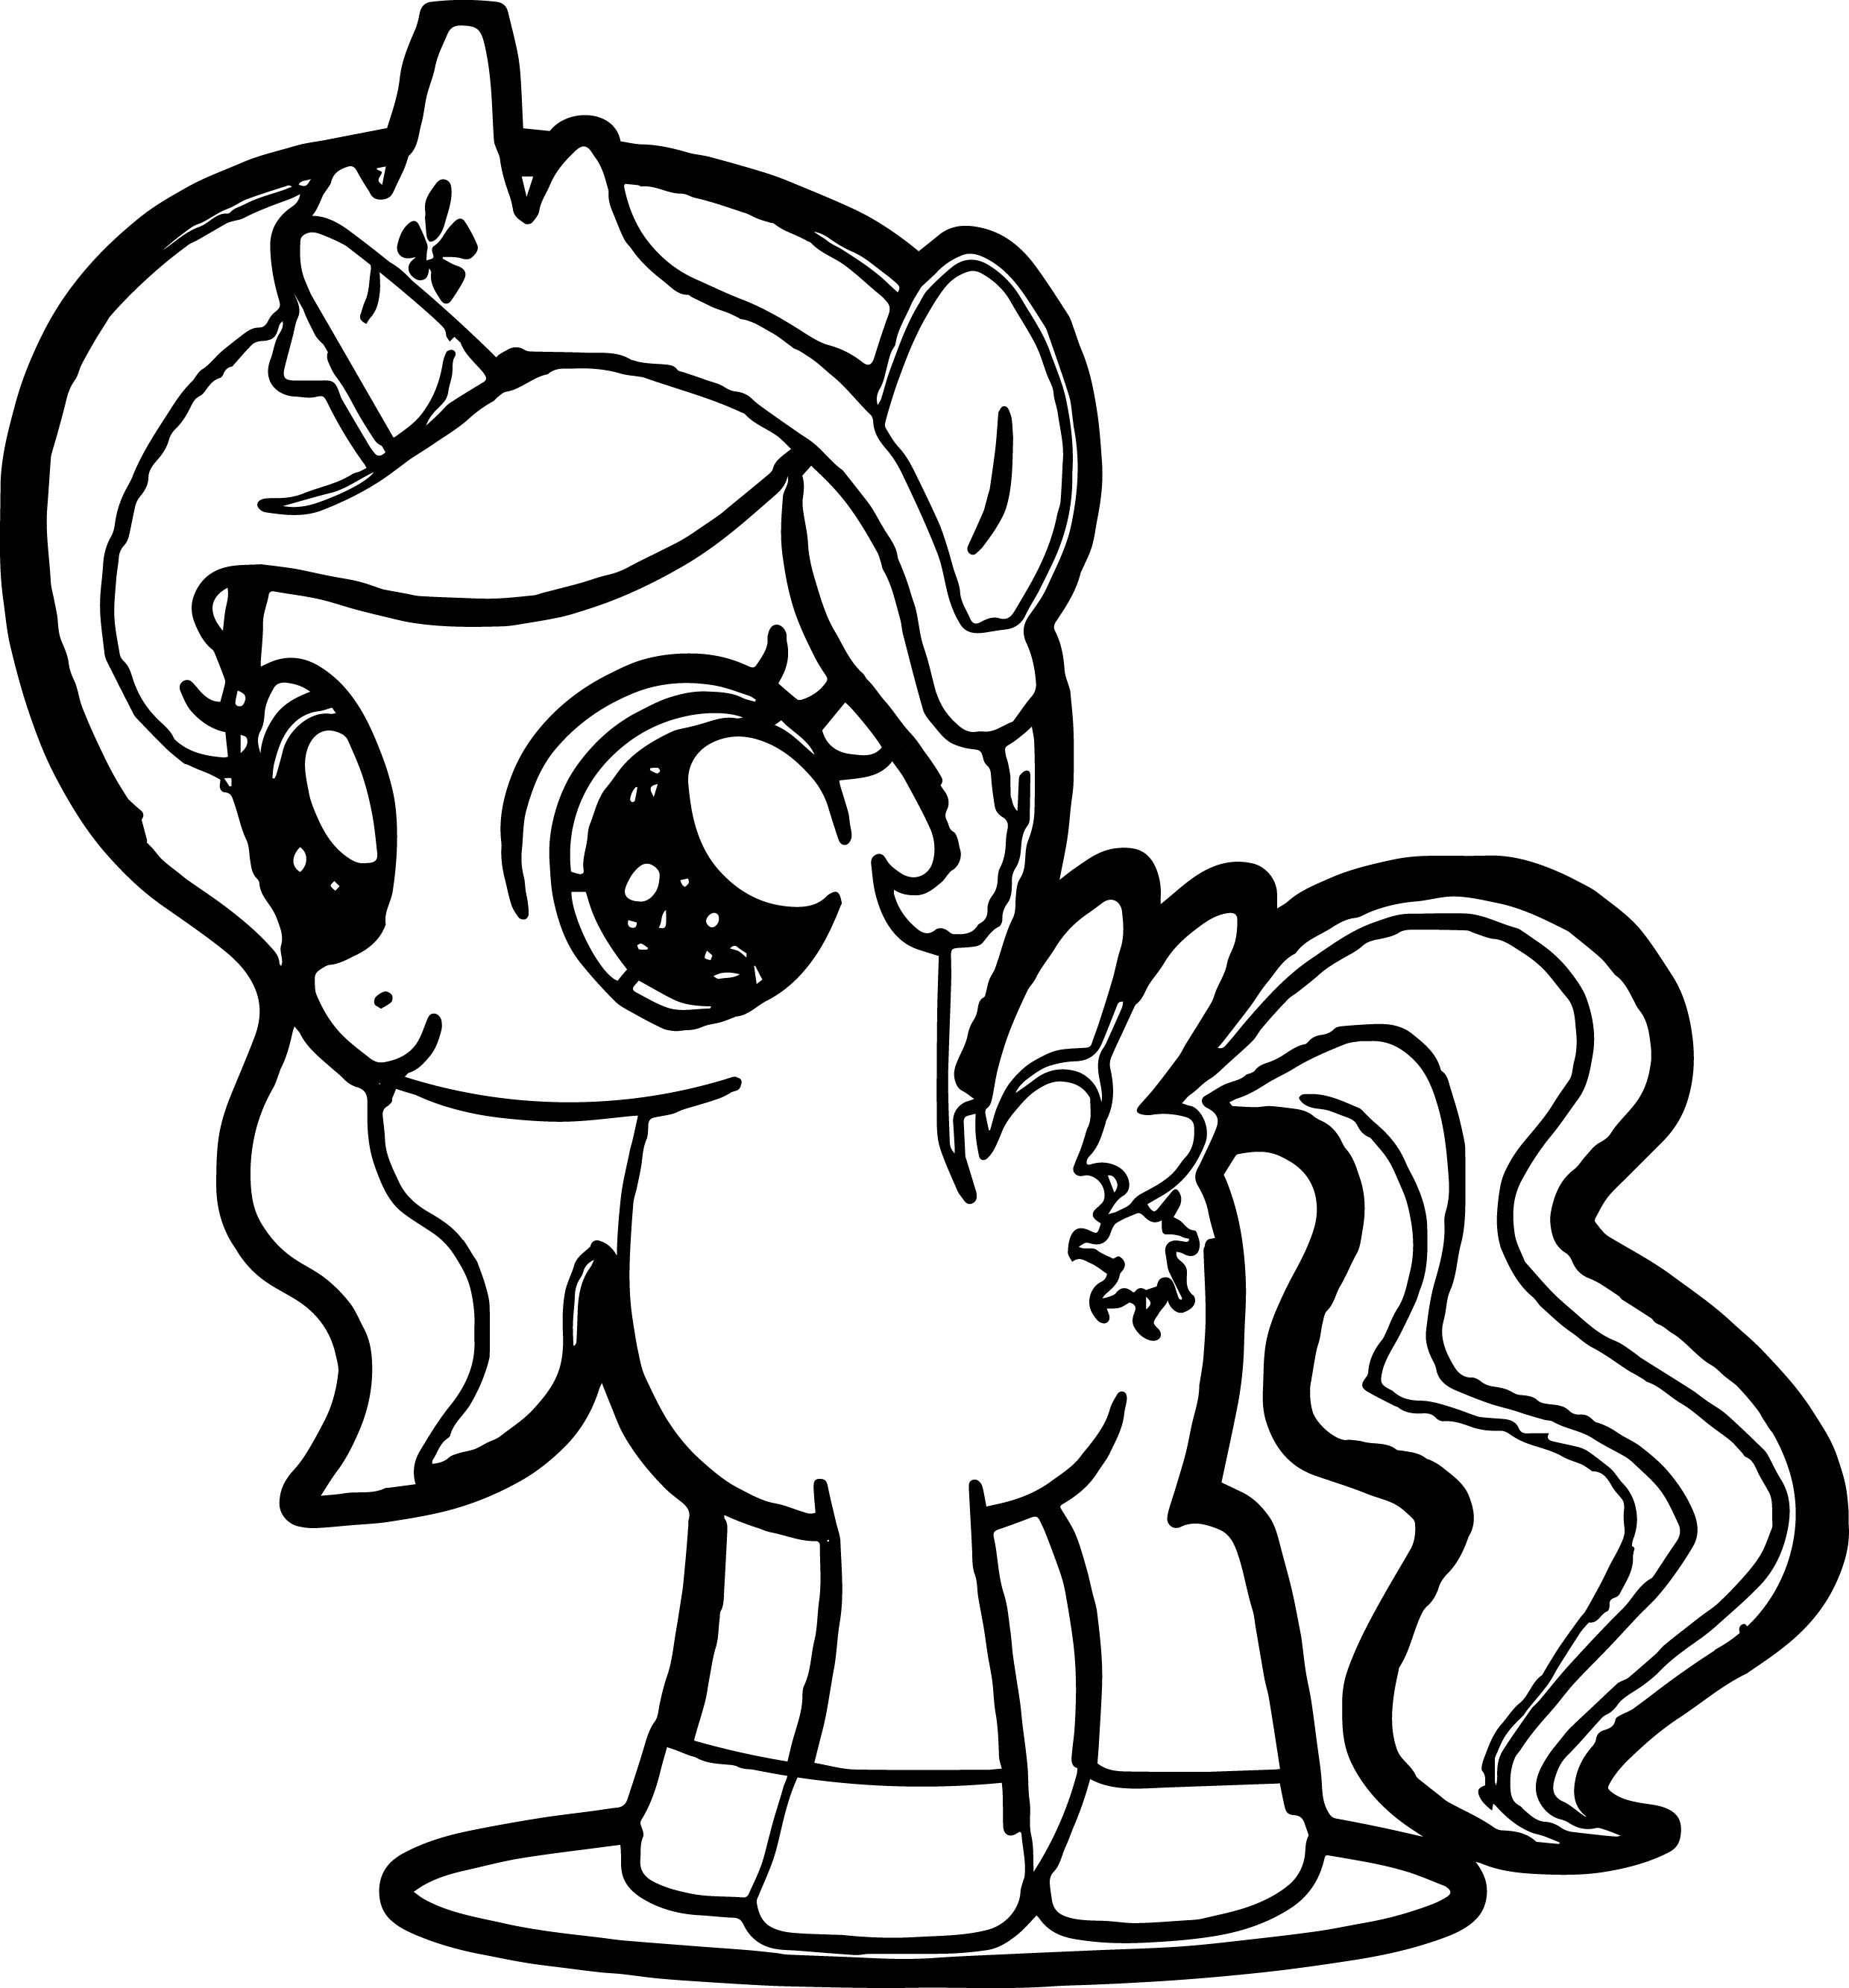 my little pony coloring images my little pony coloring pages images coloring my little pony